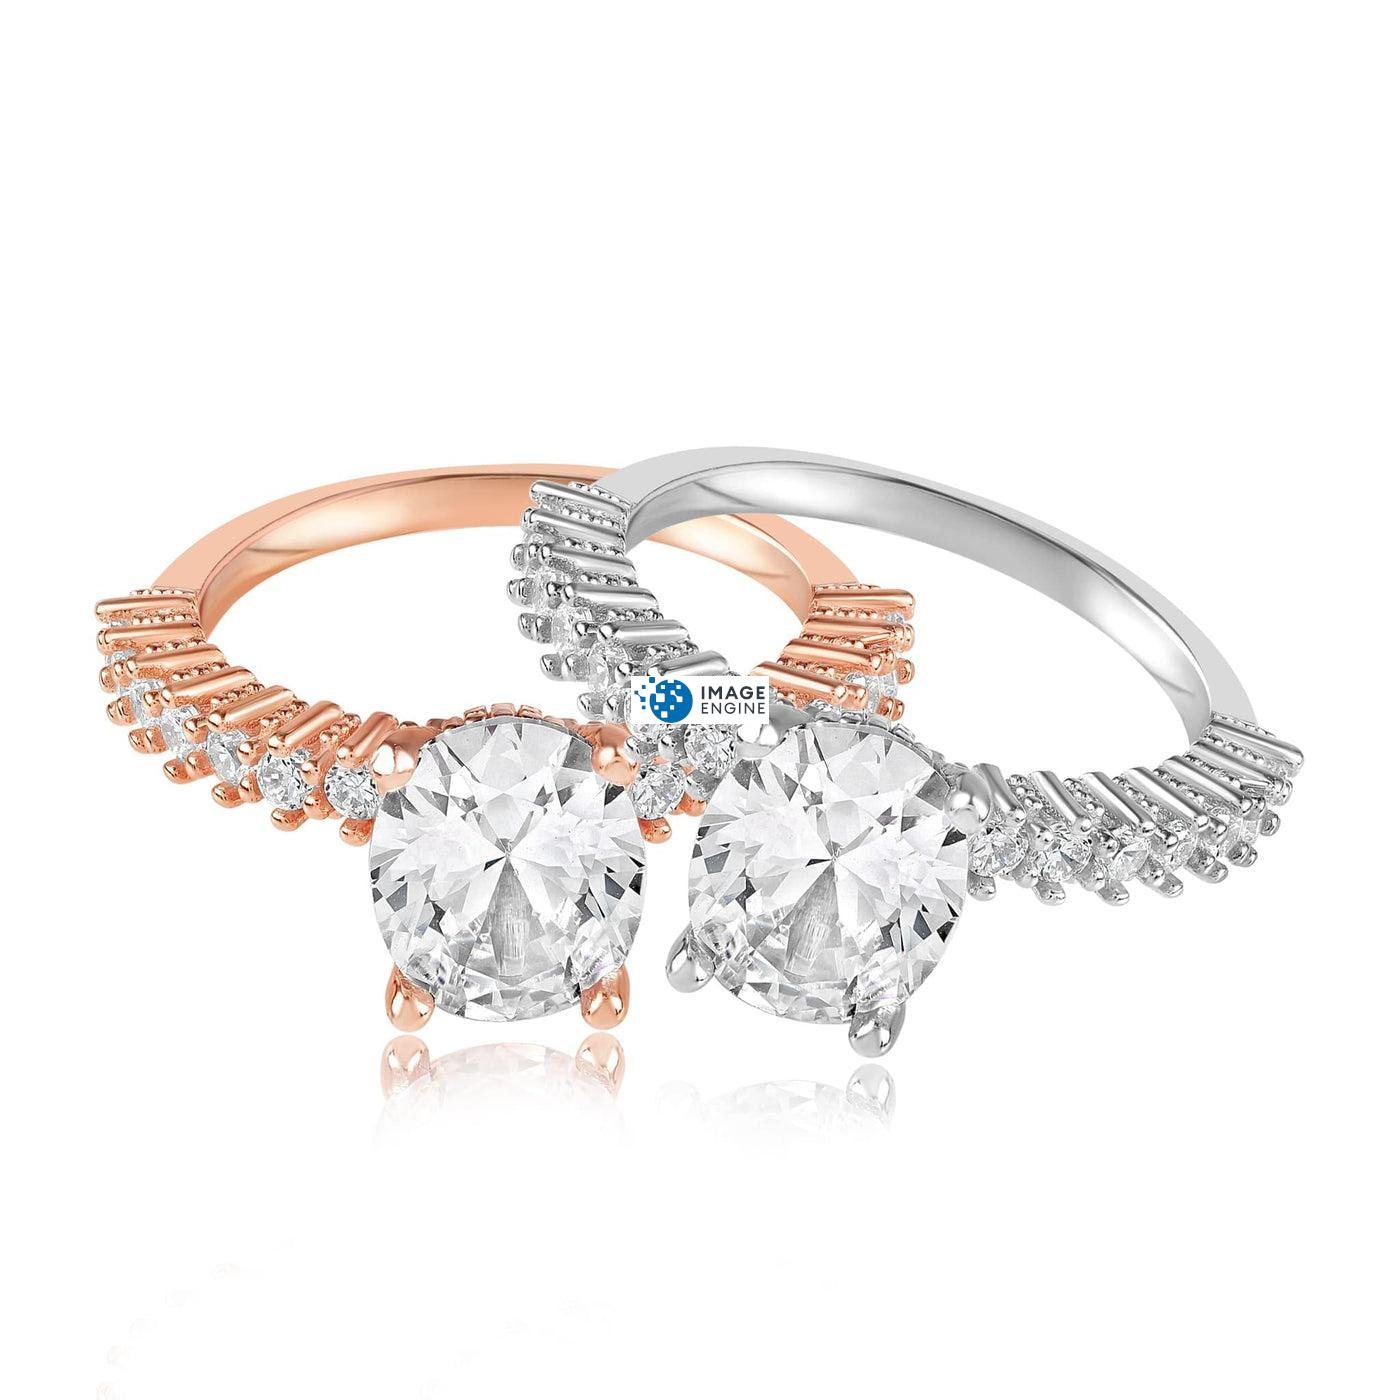 Cara Zirconia Ring - Front View Side by Side - 18K Rose Gold Vermeil and 925 Sterling Silver